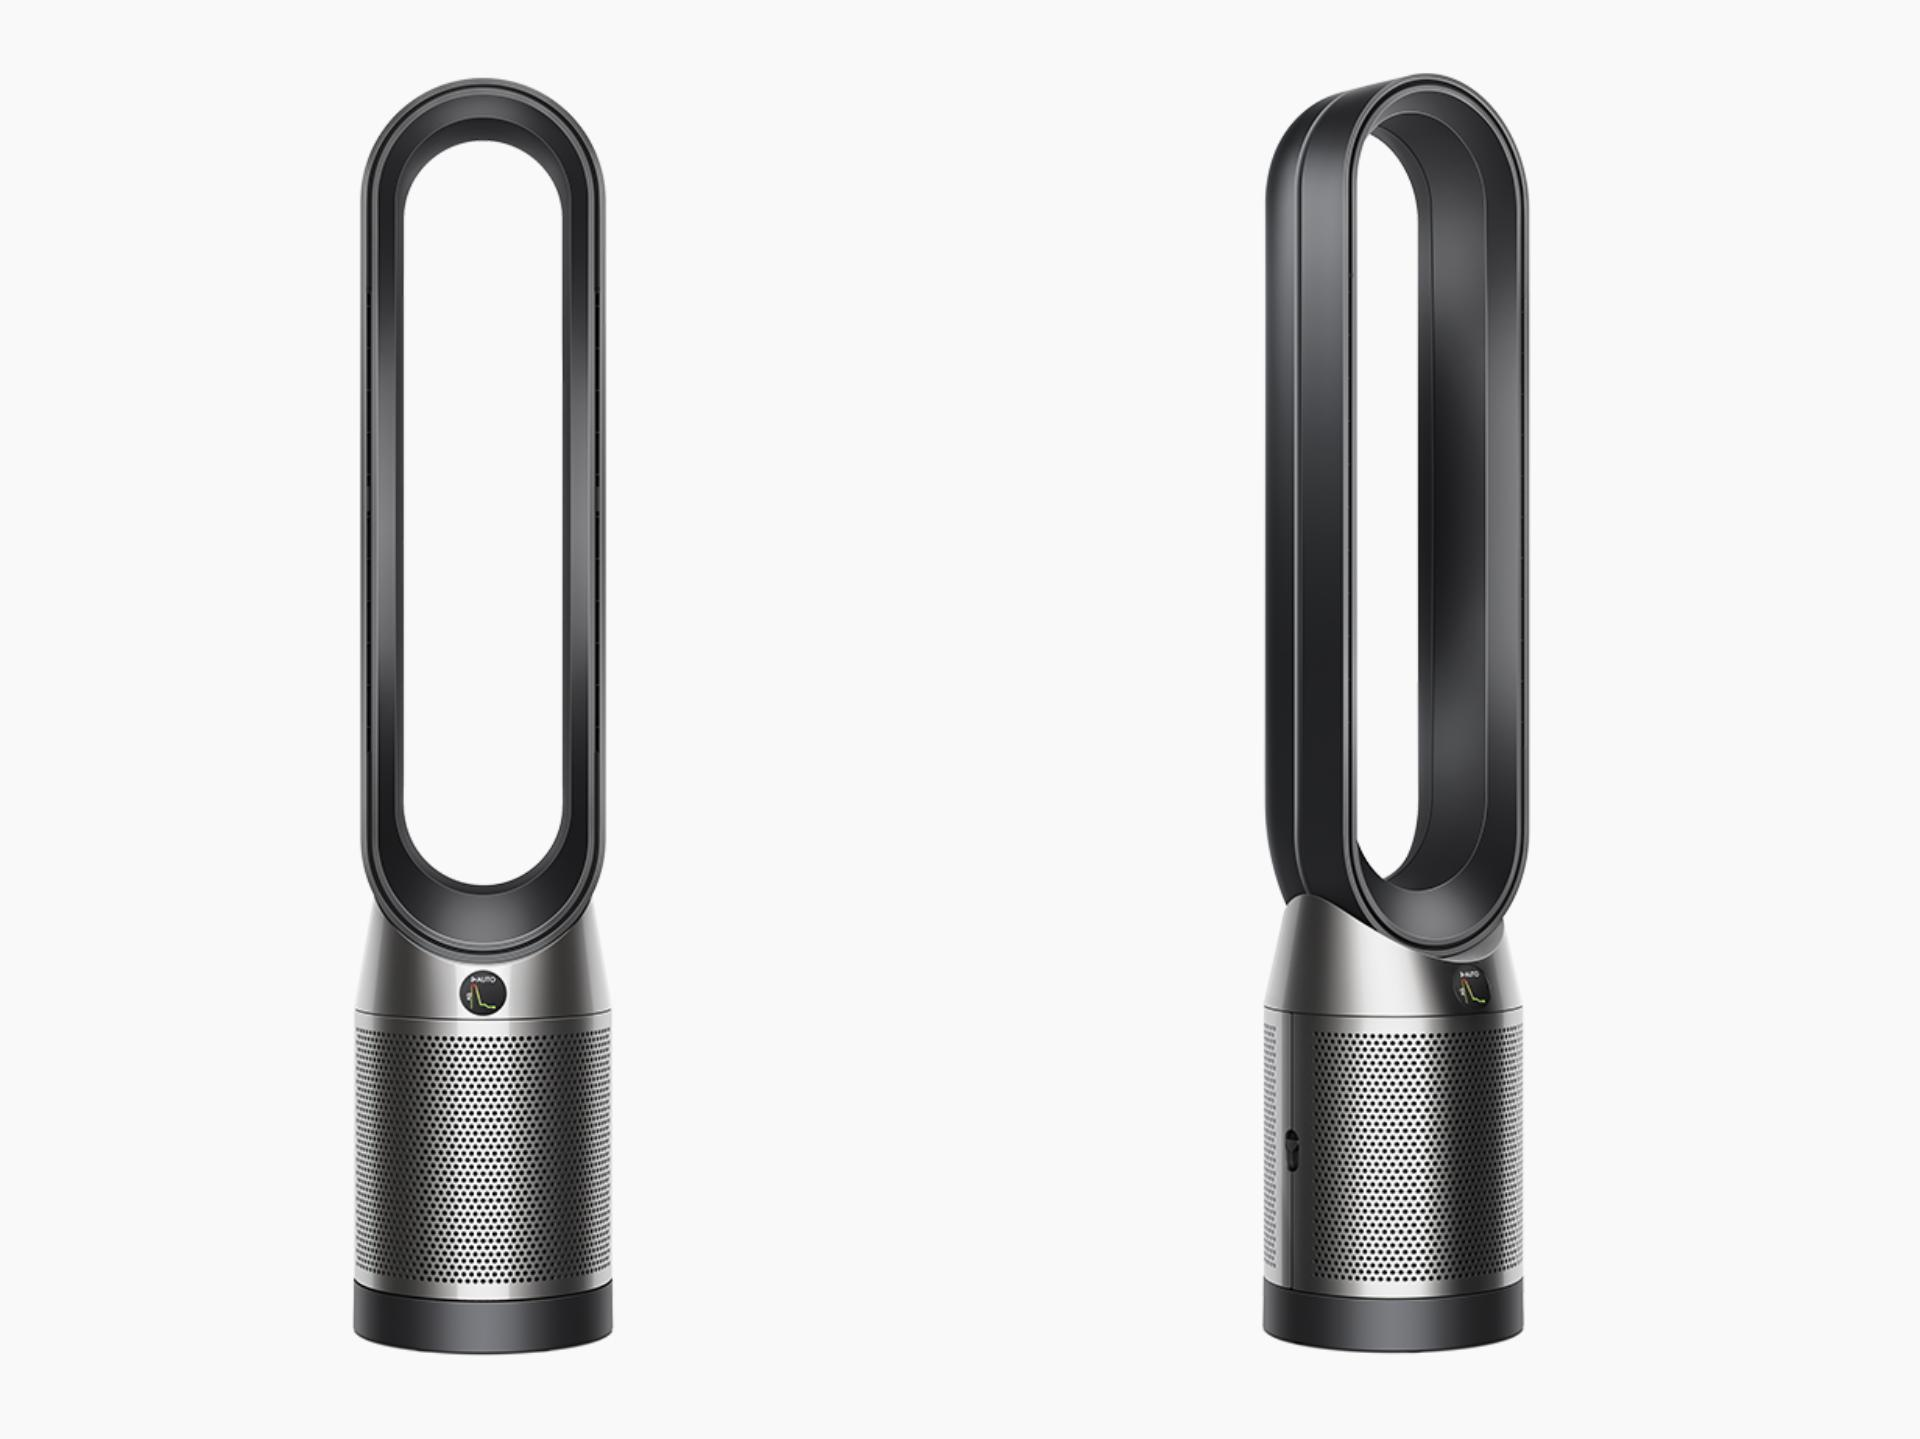 Different angles of the Dyson Purifier Cool purifying fan heater